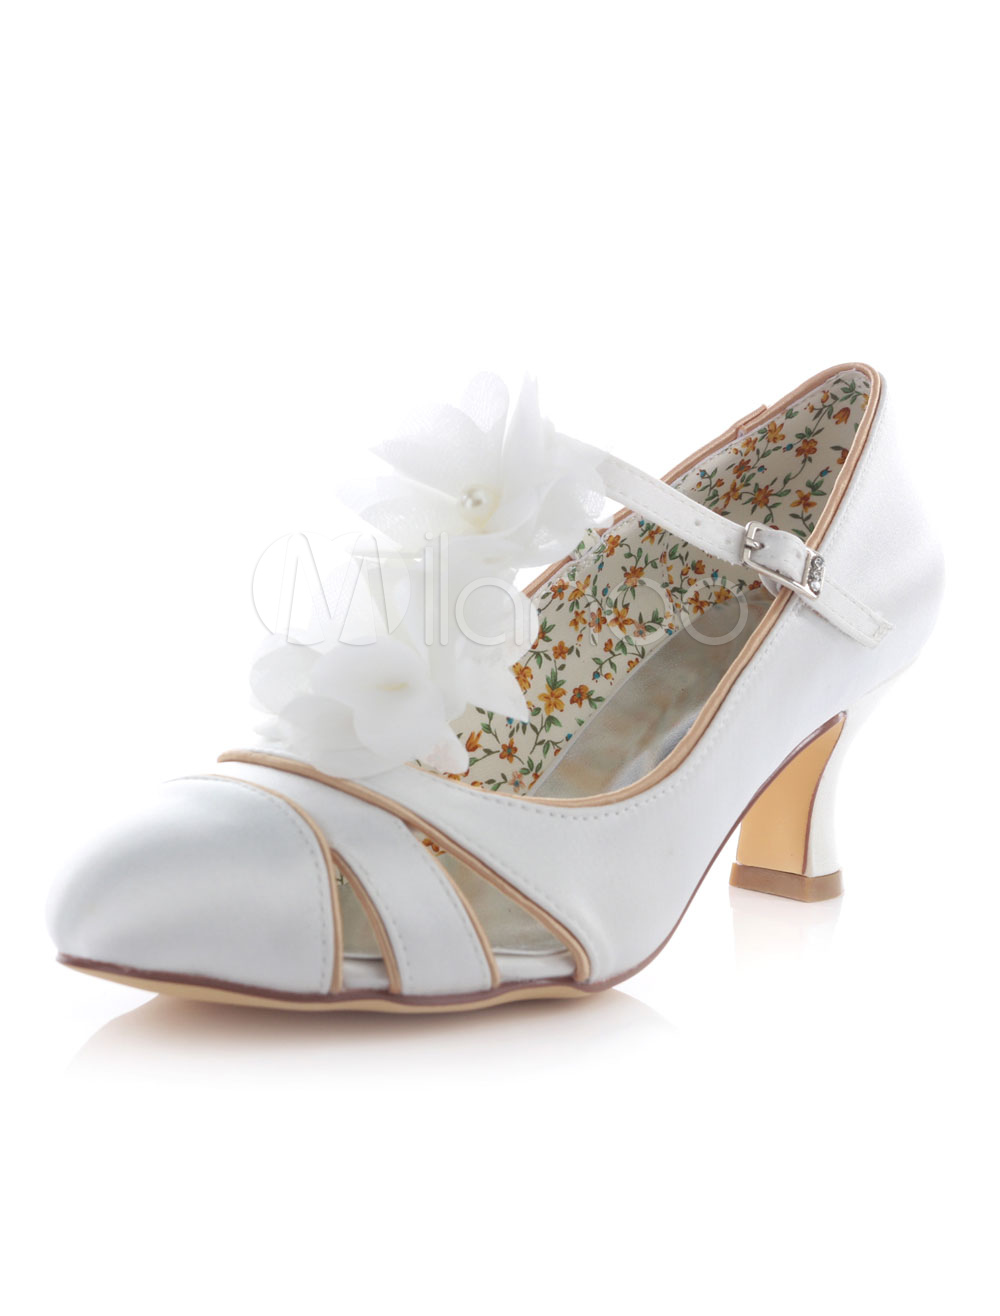 Women's Wedding Shoes High Heel Cut Out T-Type Bandage Chunky Bridal Shoes